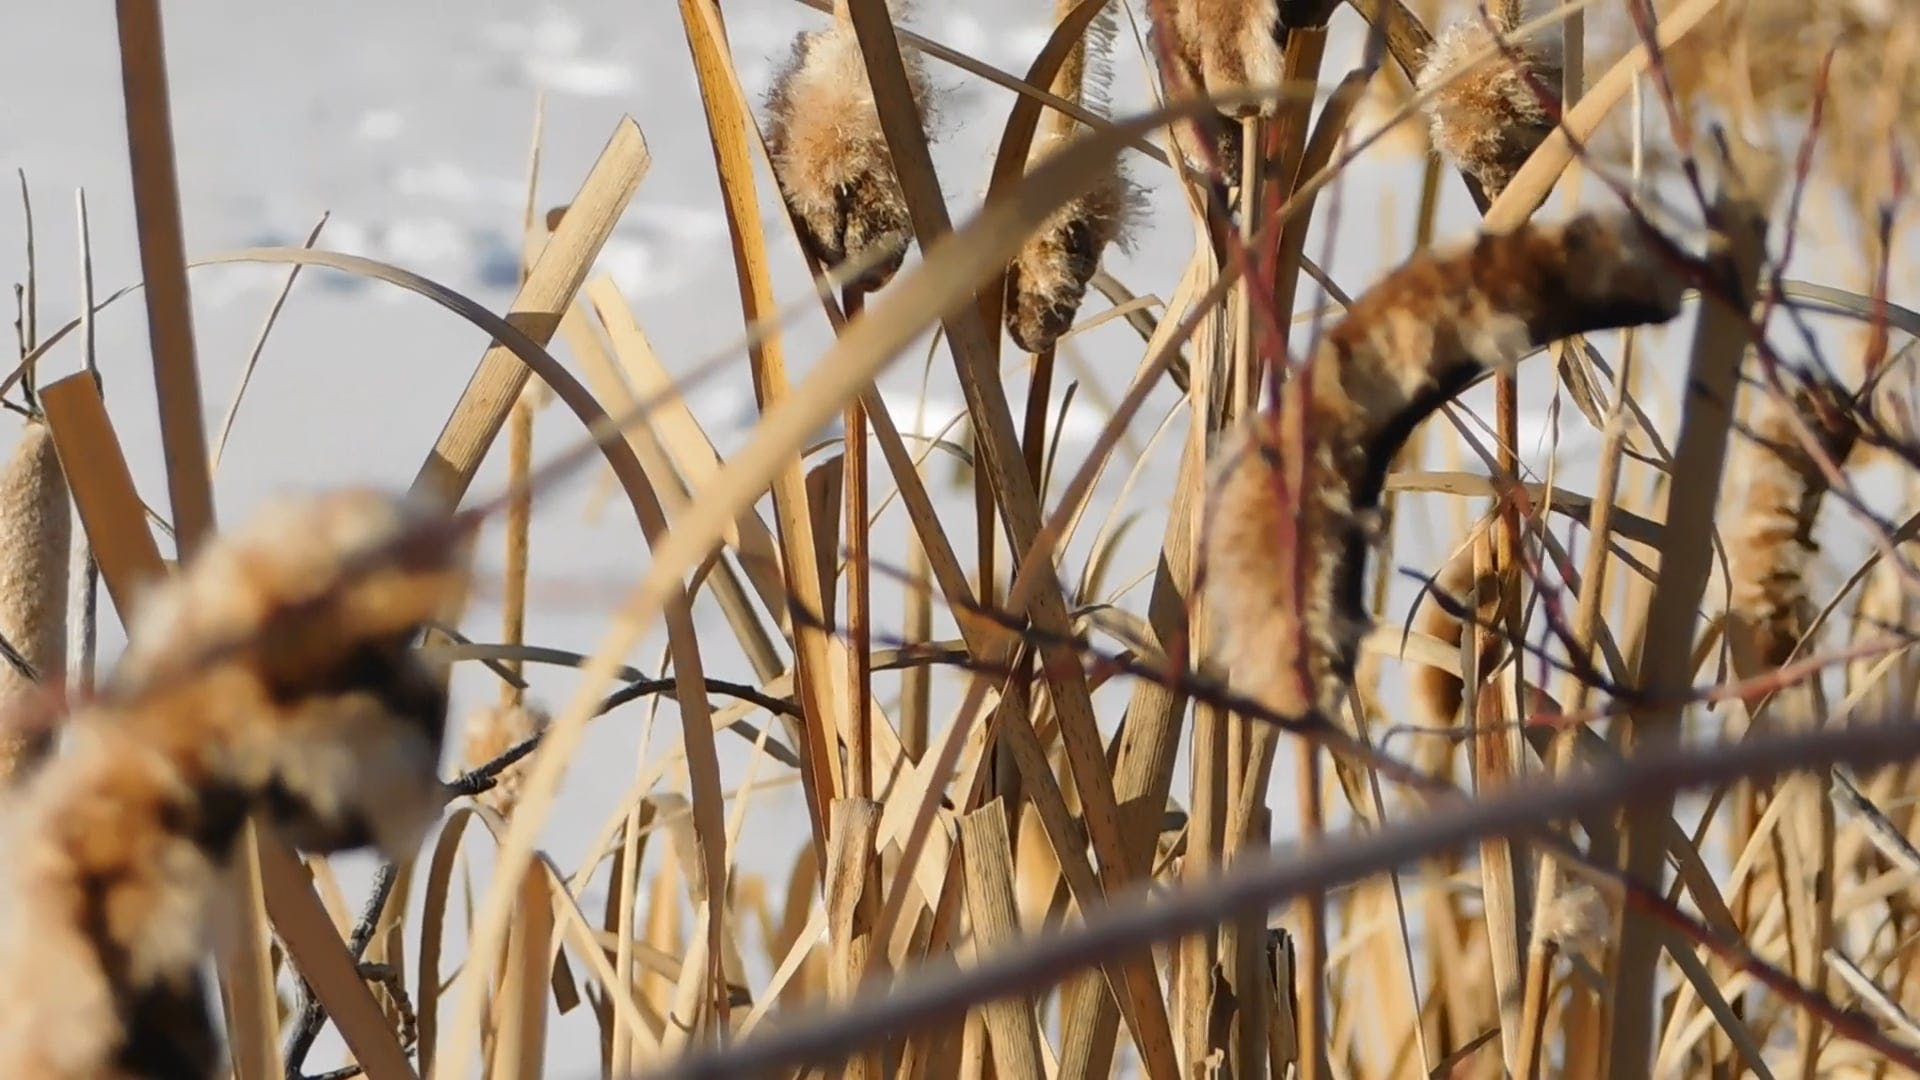 Dry Cattails At Winter